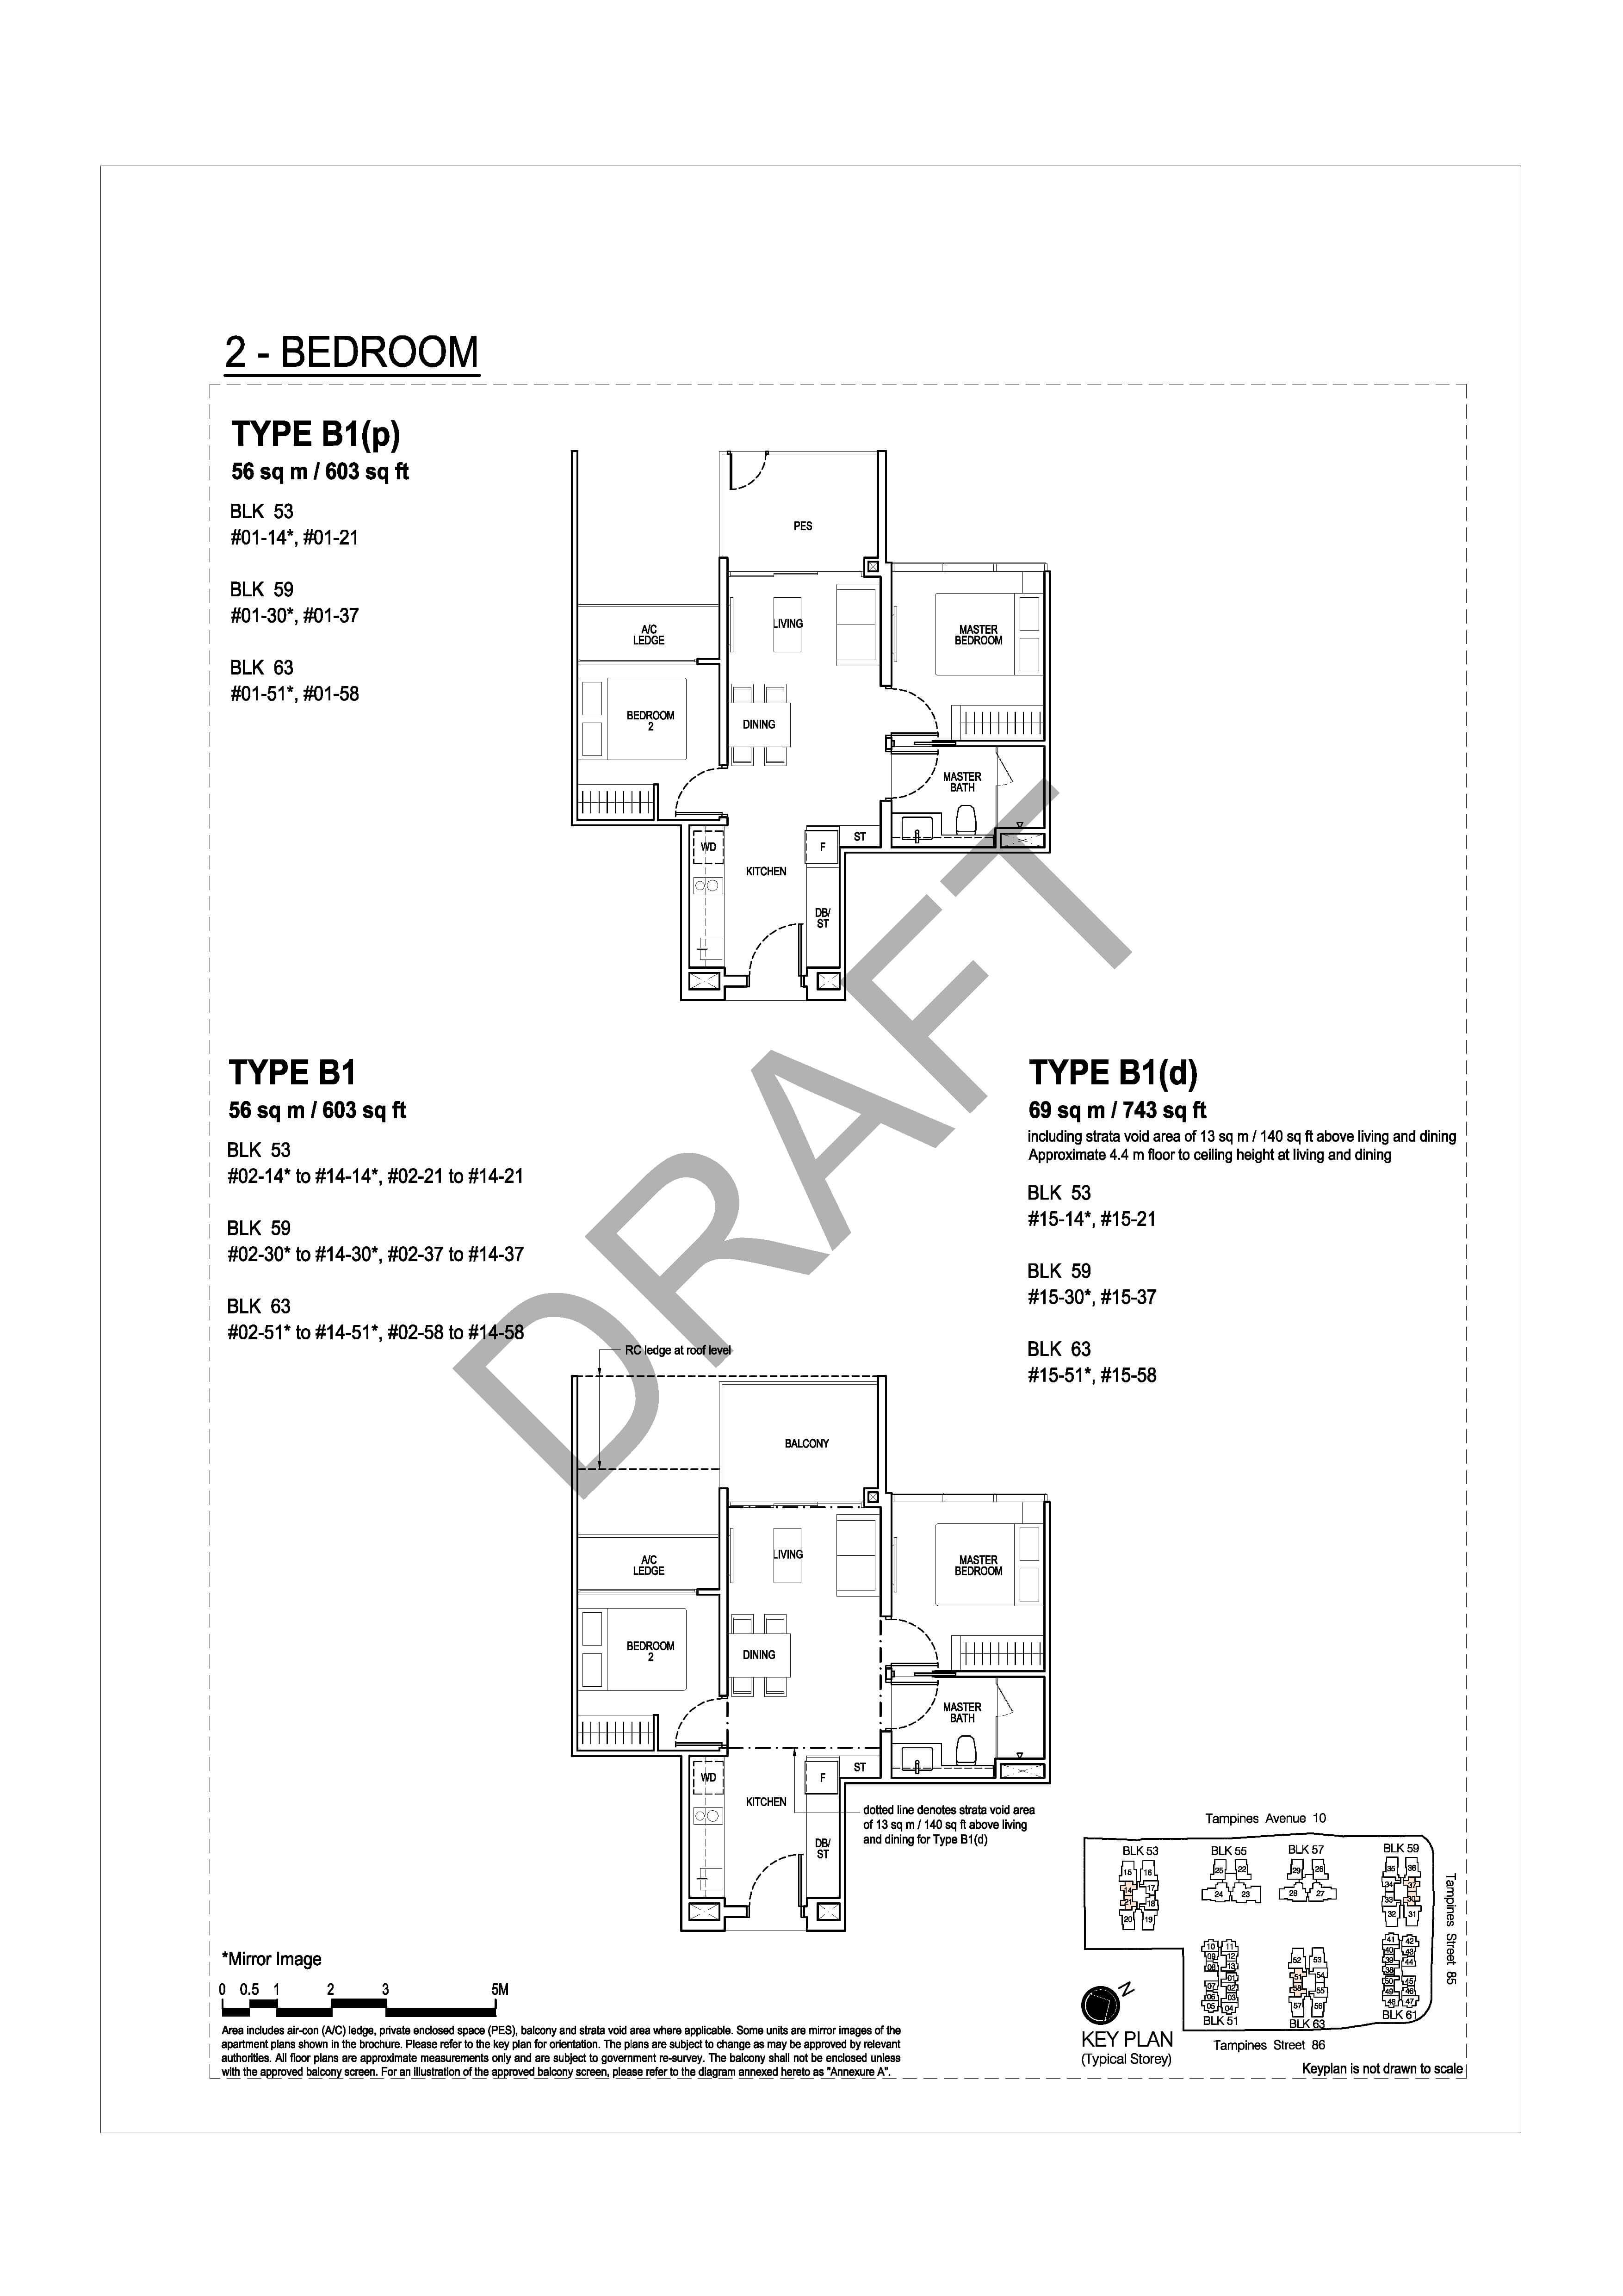 The Tapestry Floor Plans View Unit Distribution For All Bedroom Layouts